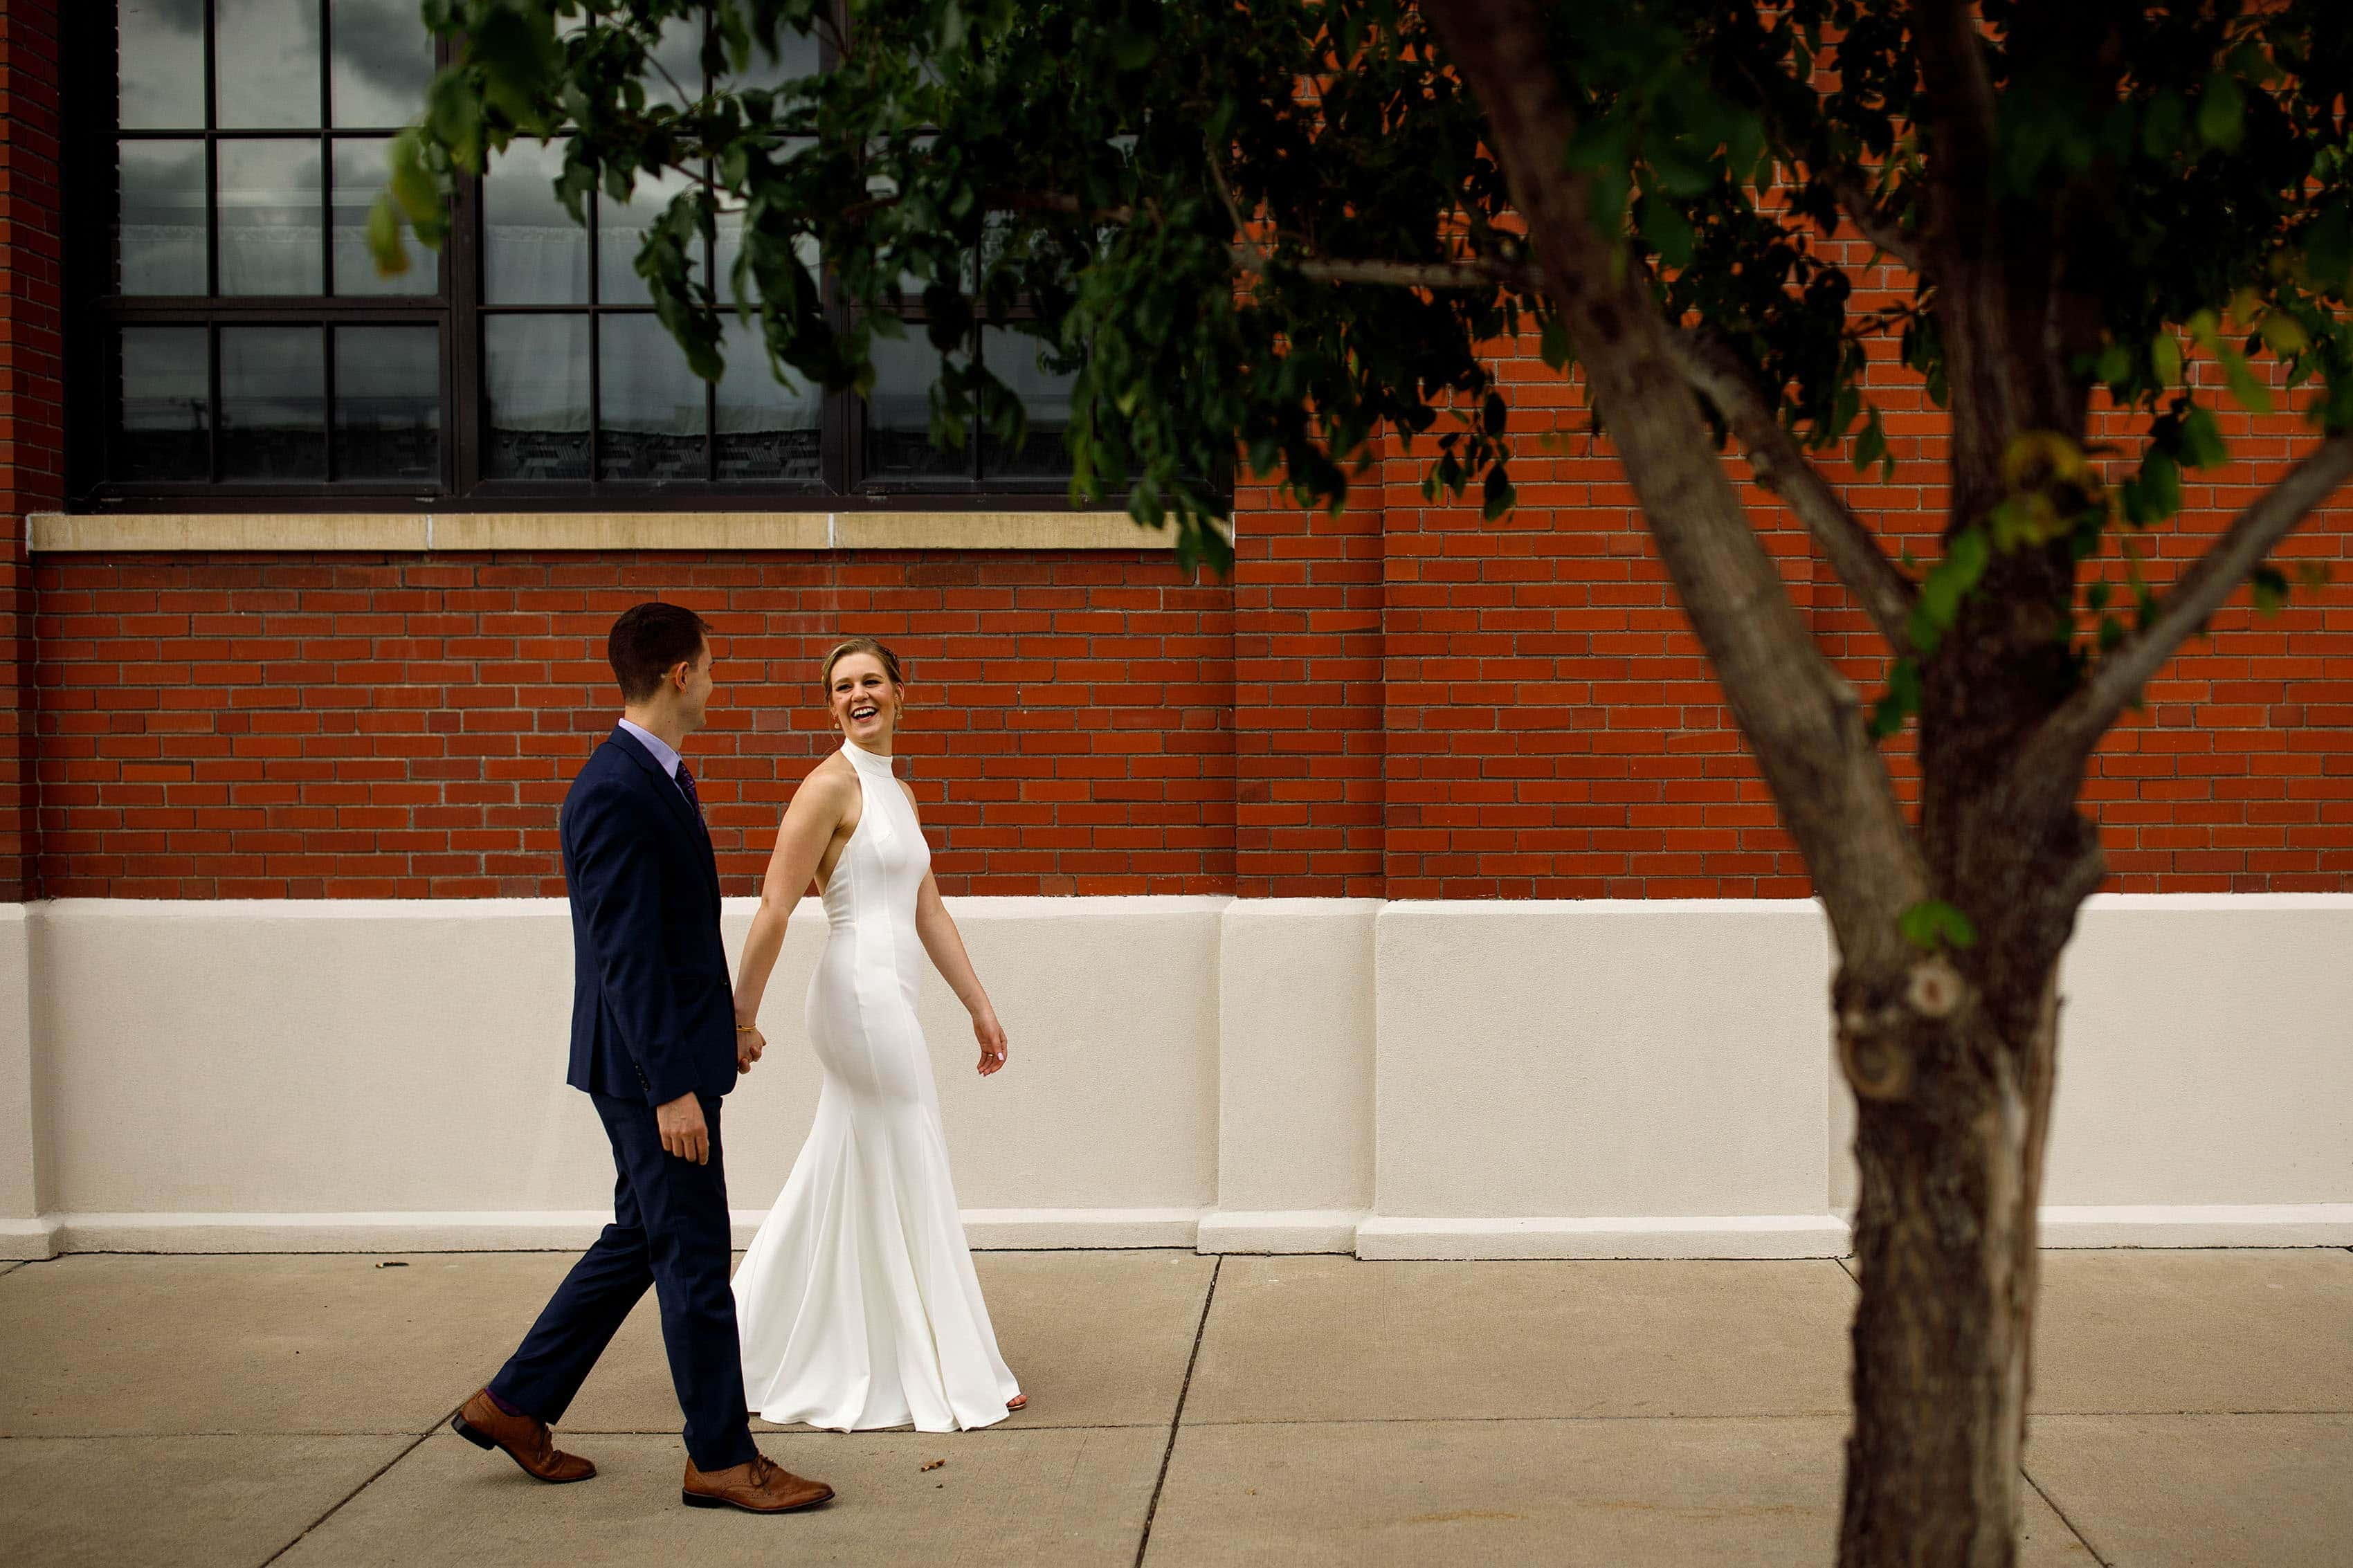 Newlyweds walk together in RiNo